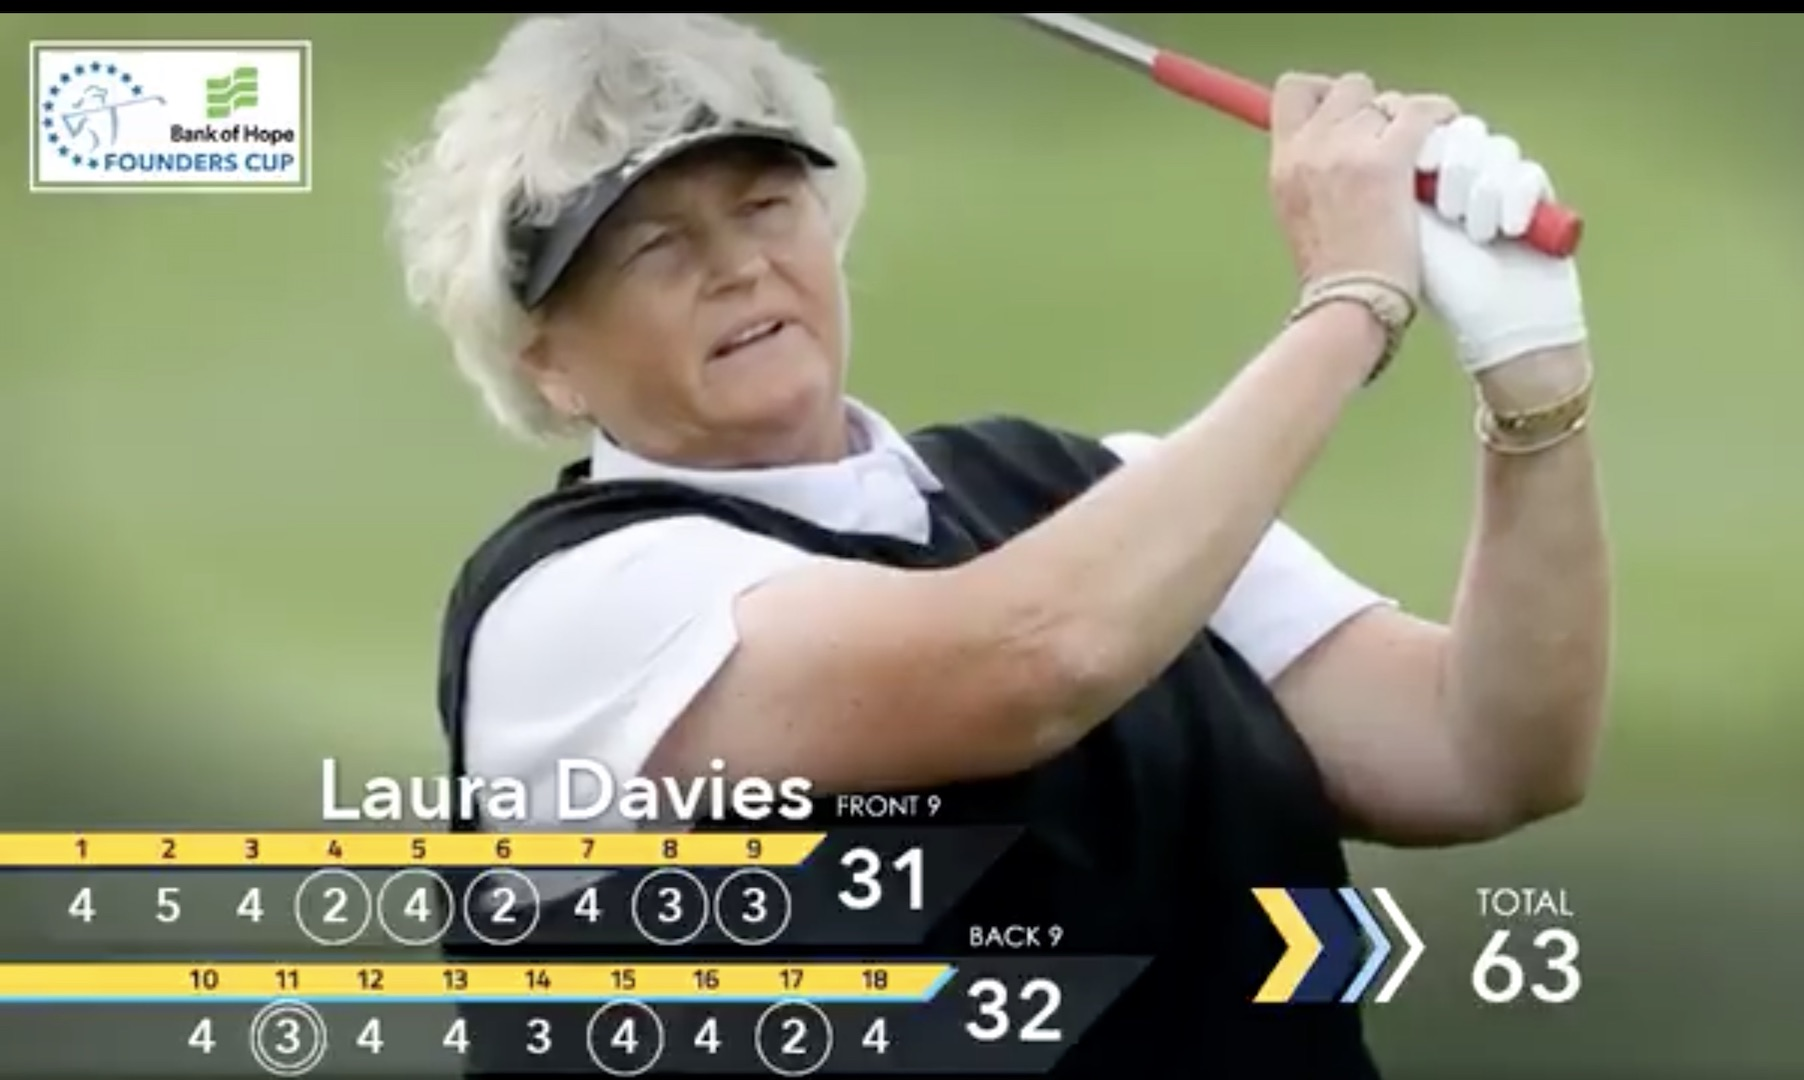 LPGA: Park wins Founders Cup, 54-year-old Davies ties for 2nd